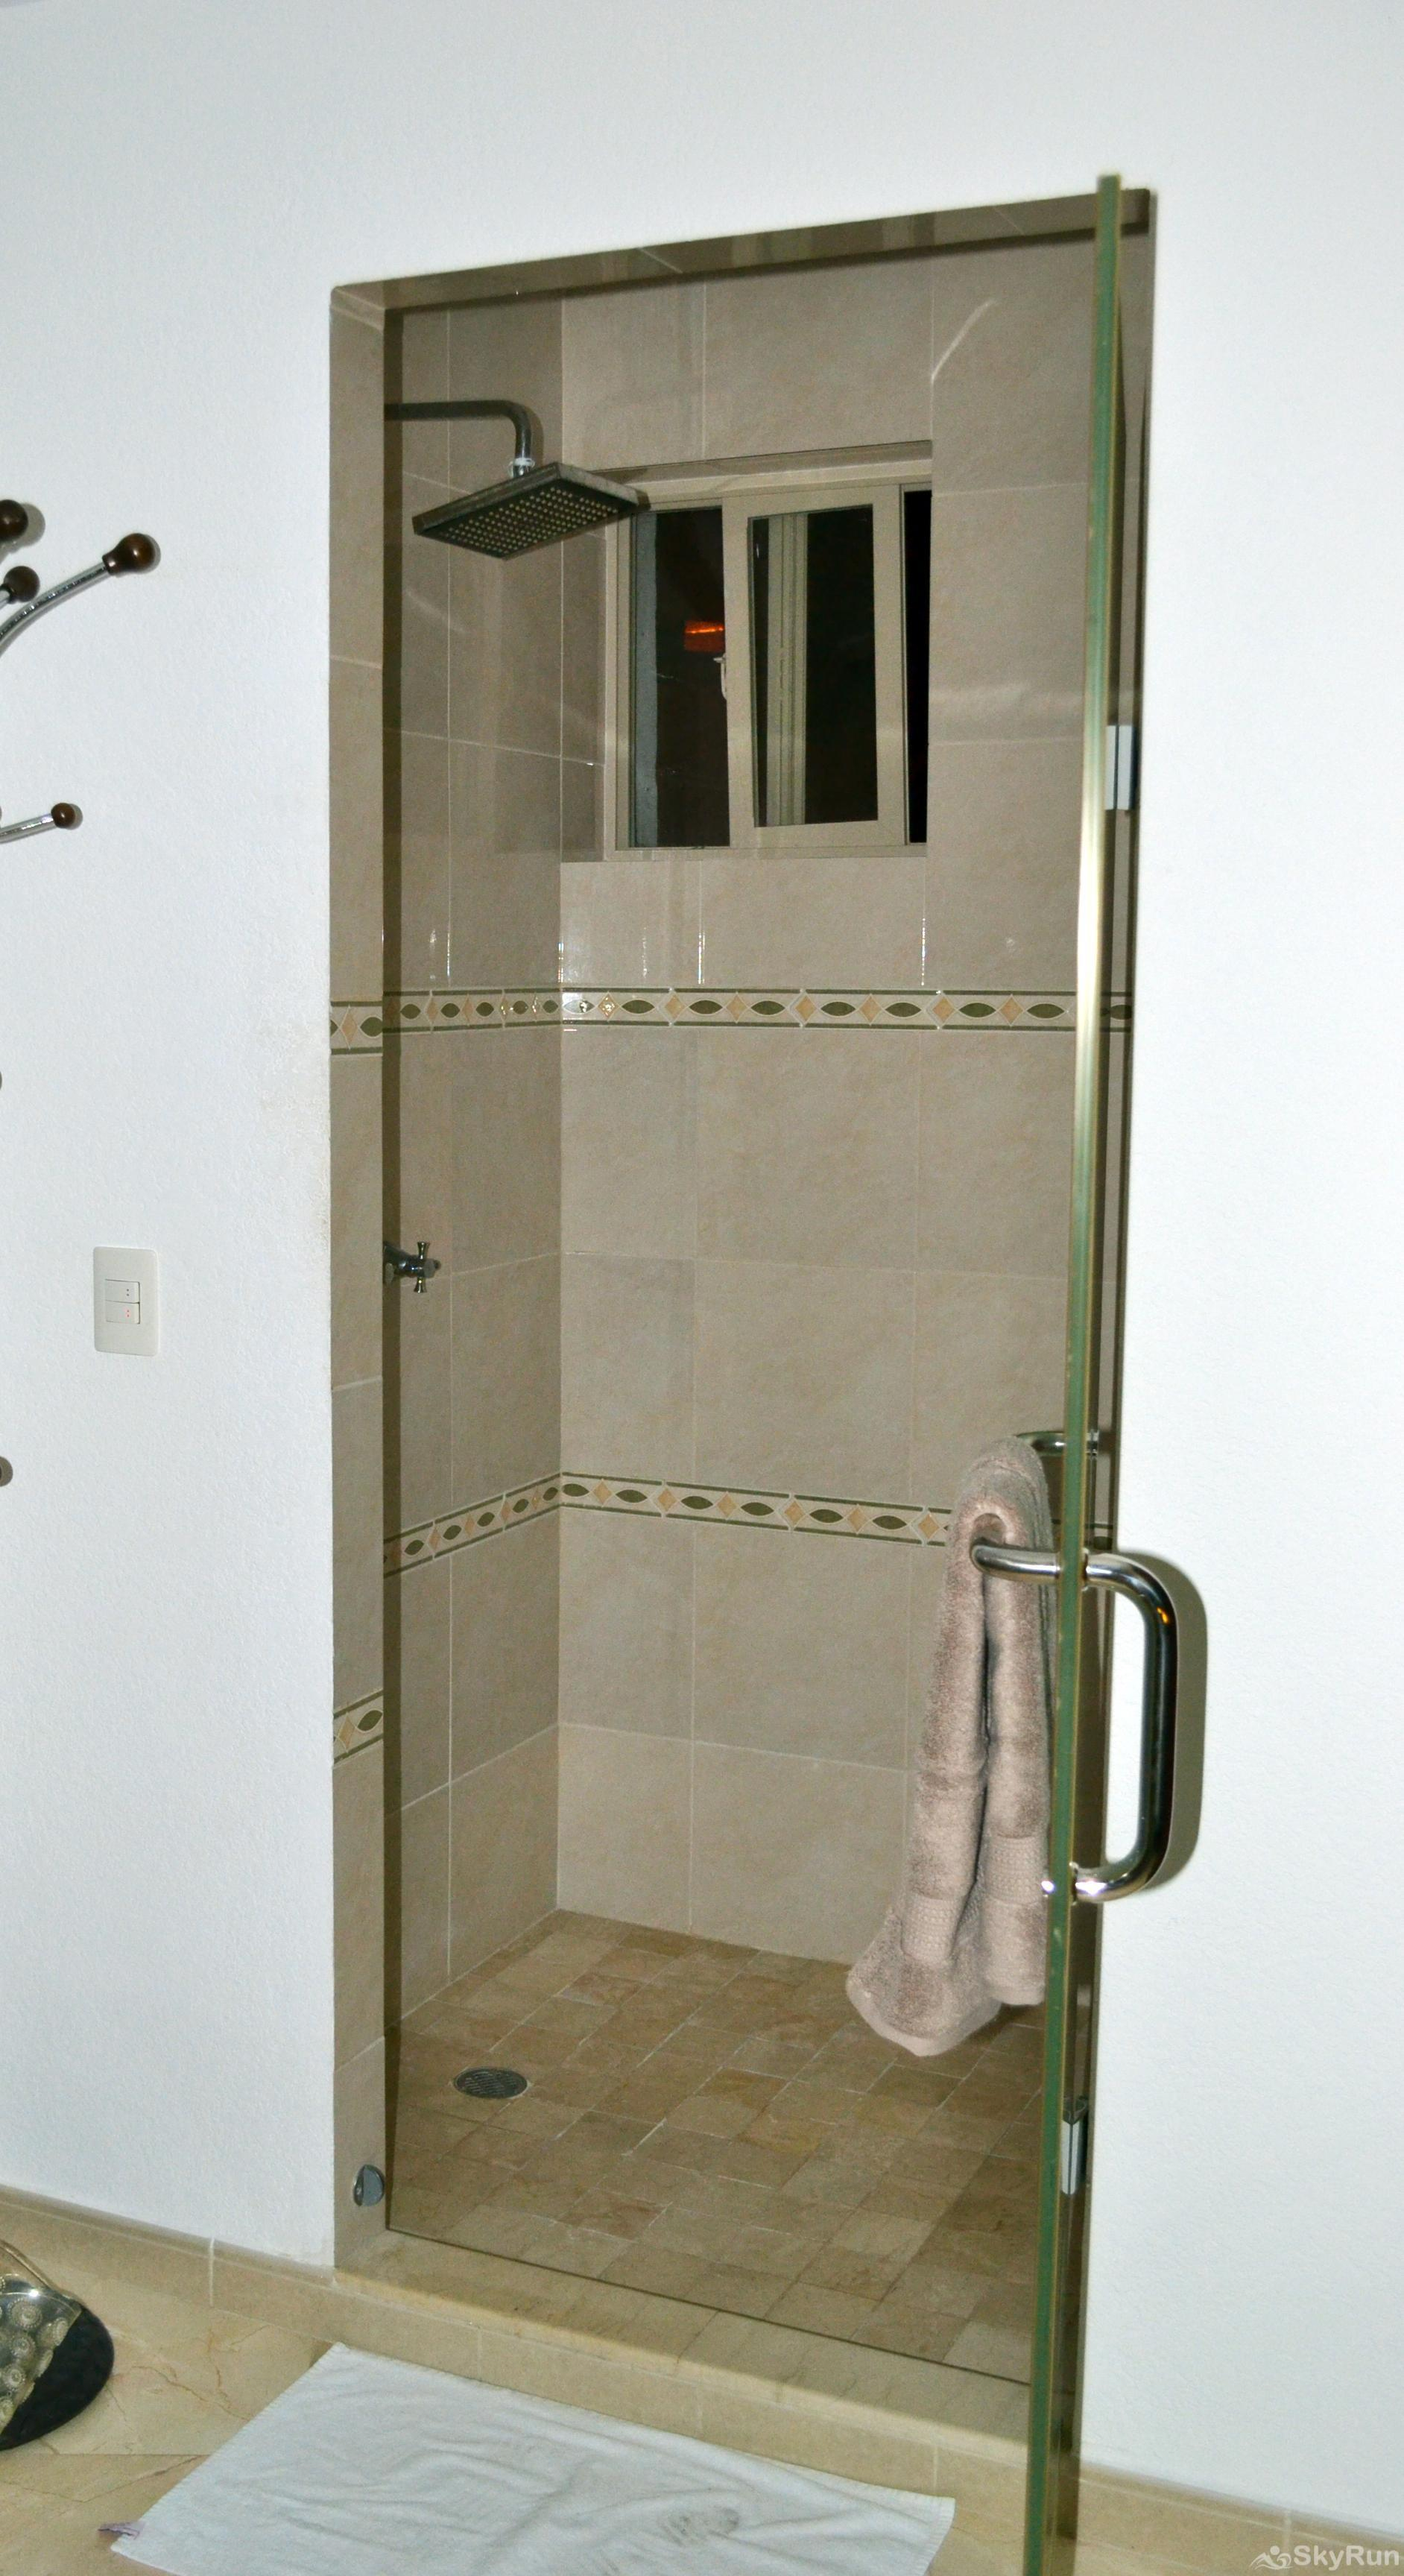 Conchas Chinas Retreat 135 Shower